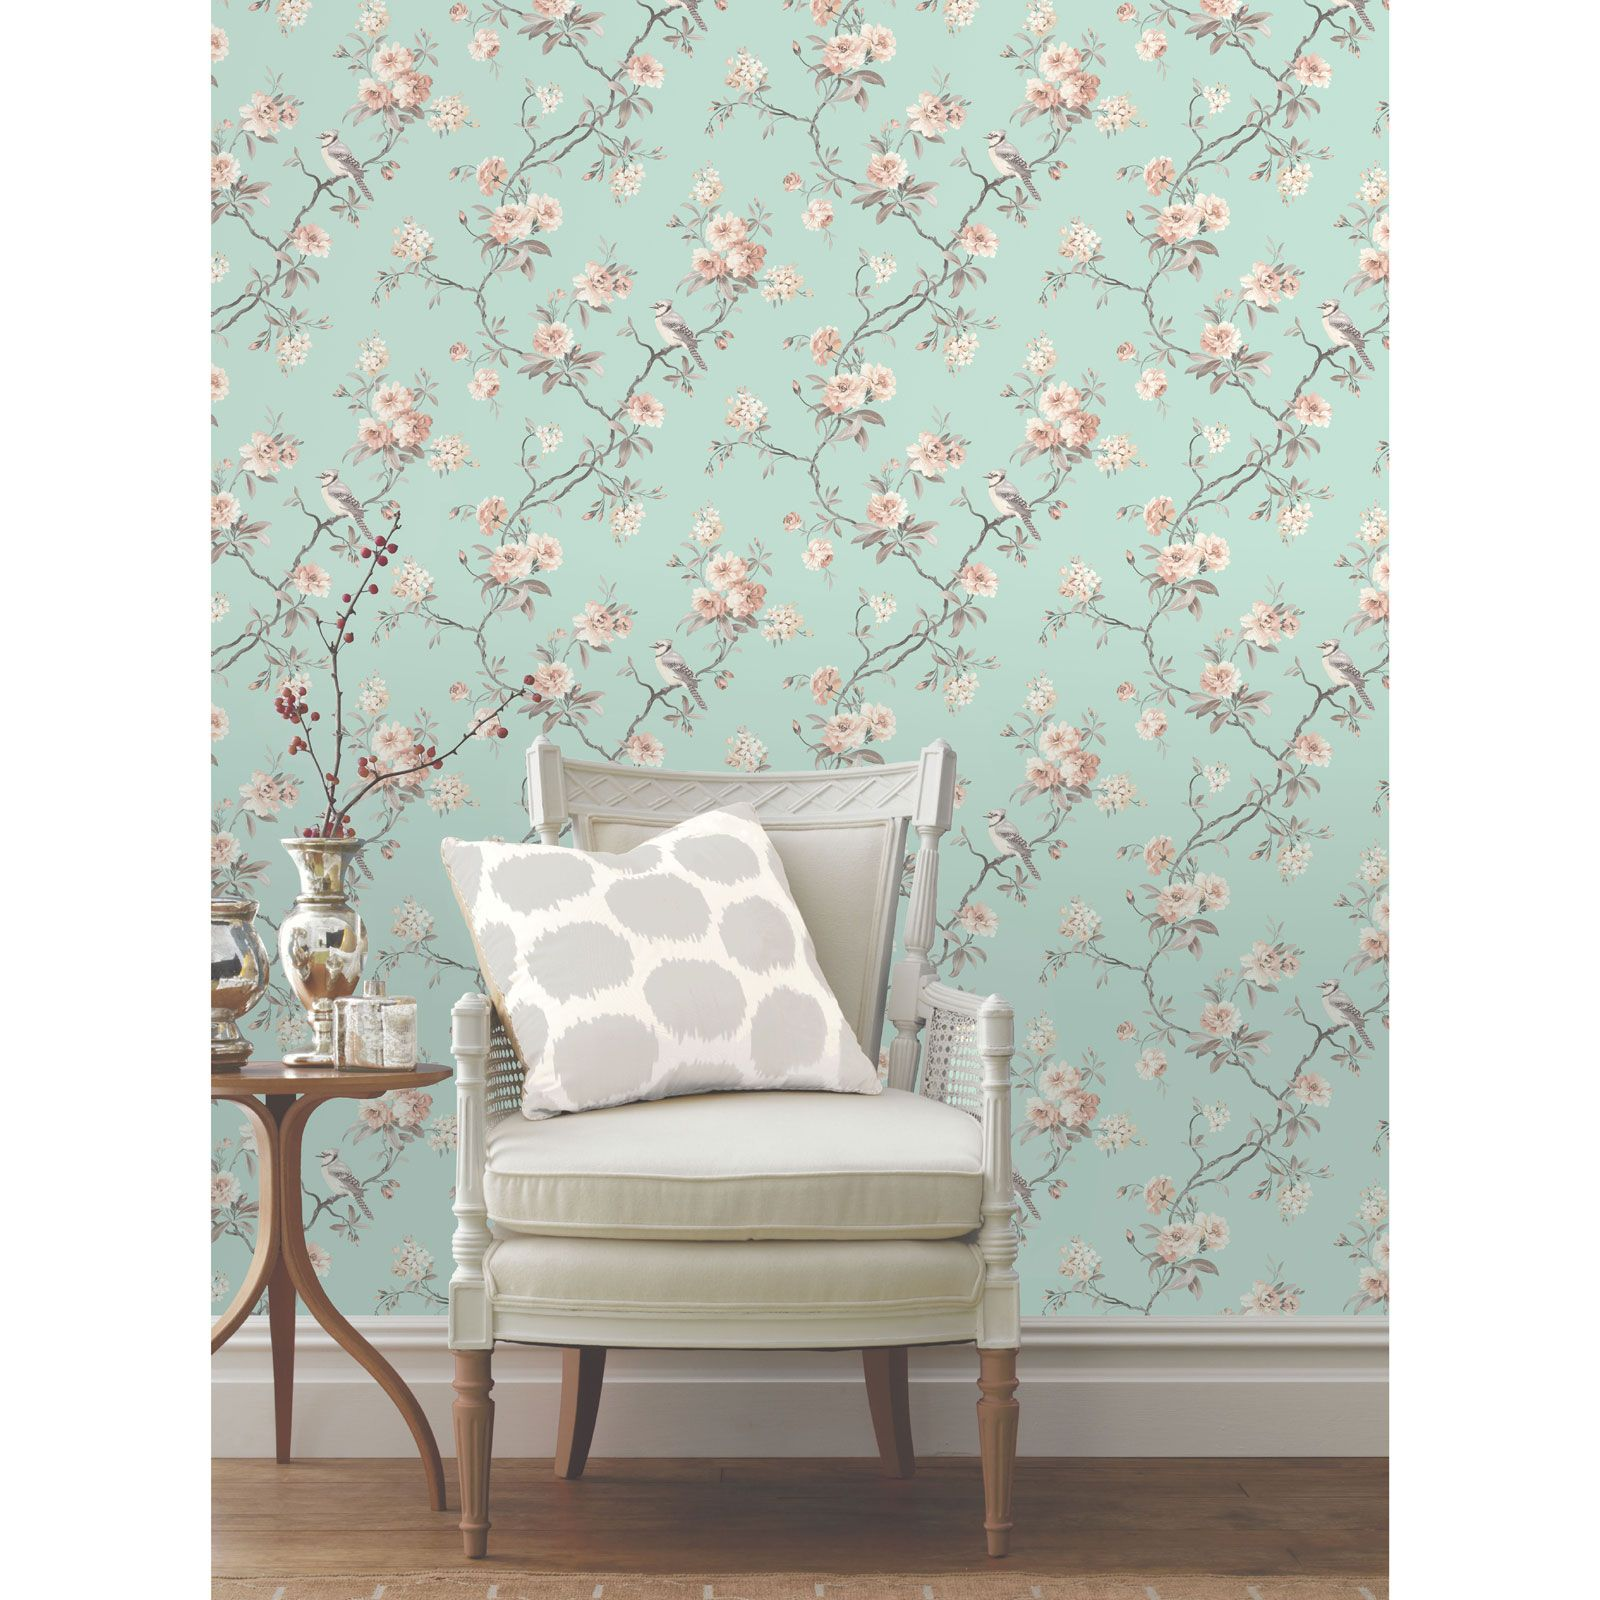 Duck Egg Blue Teal Wallpaper Owl Bird Peacock Scroll